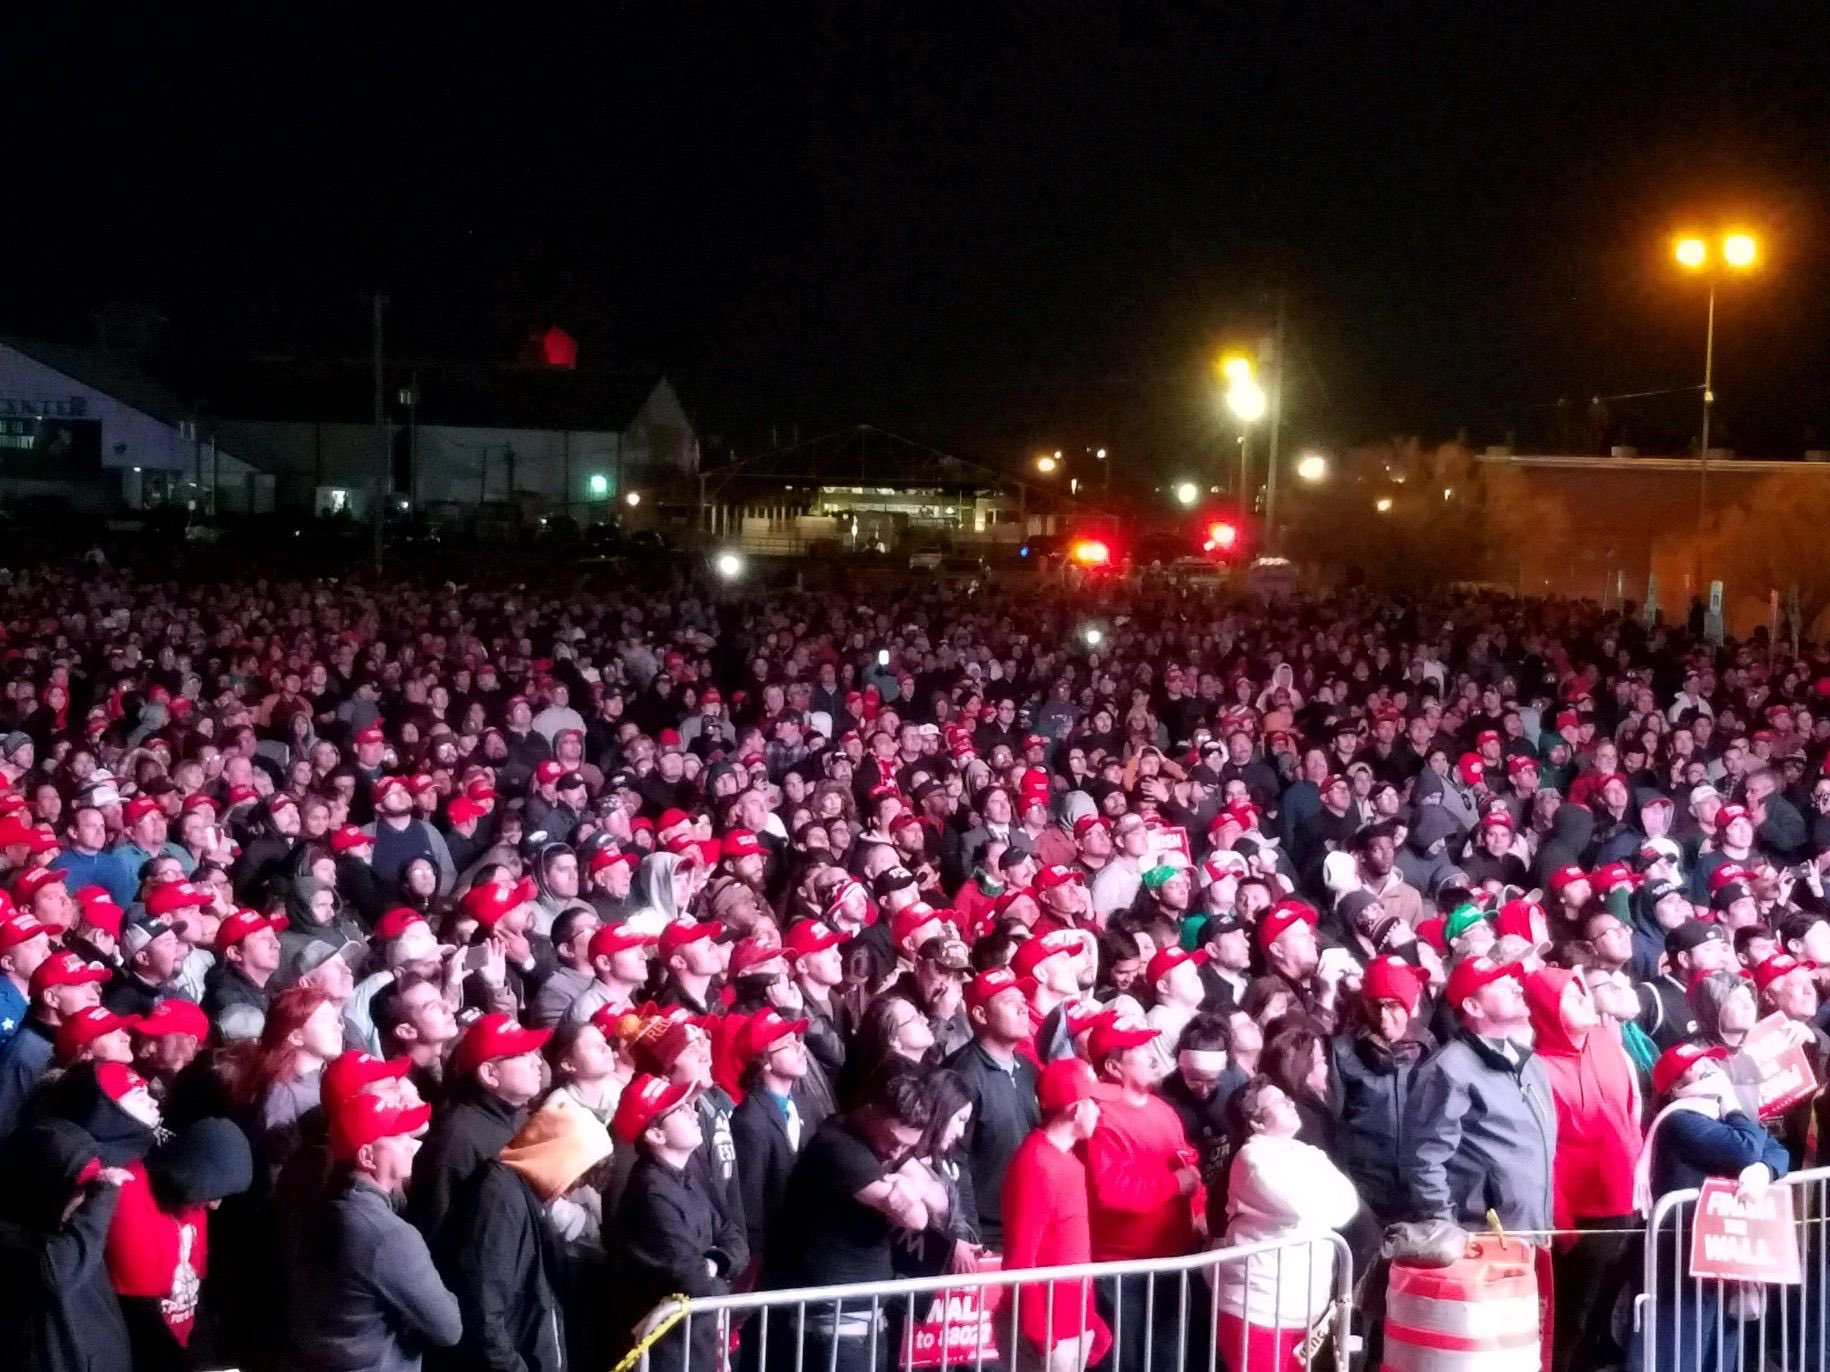 It was 45 degrees outside and this was the overflow crowd. #ElPaso @realDonaldTrump https://t.co/FipvNxp8di